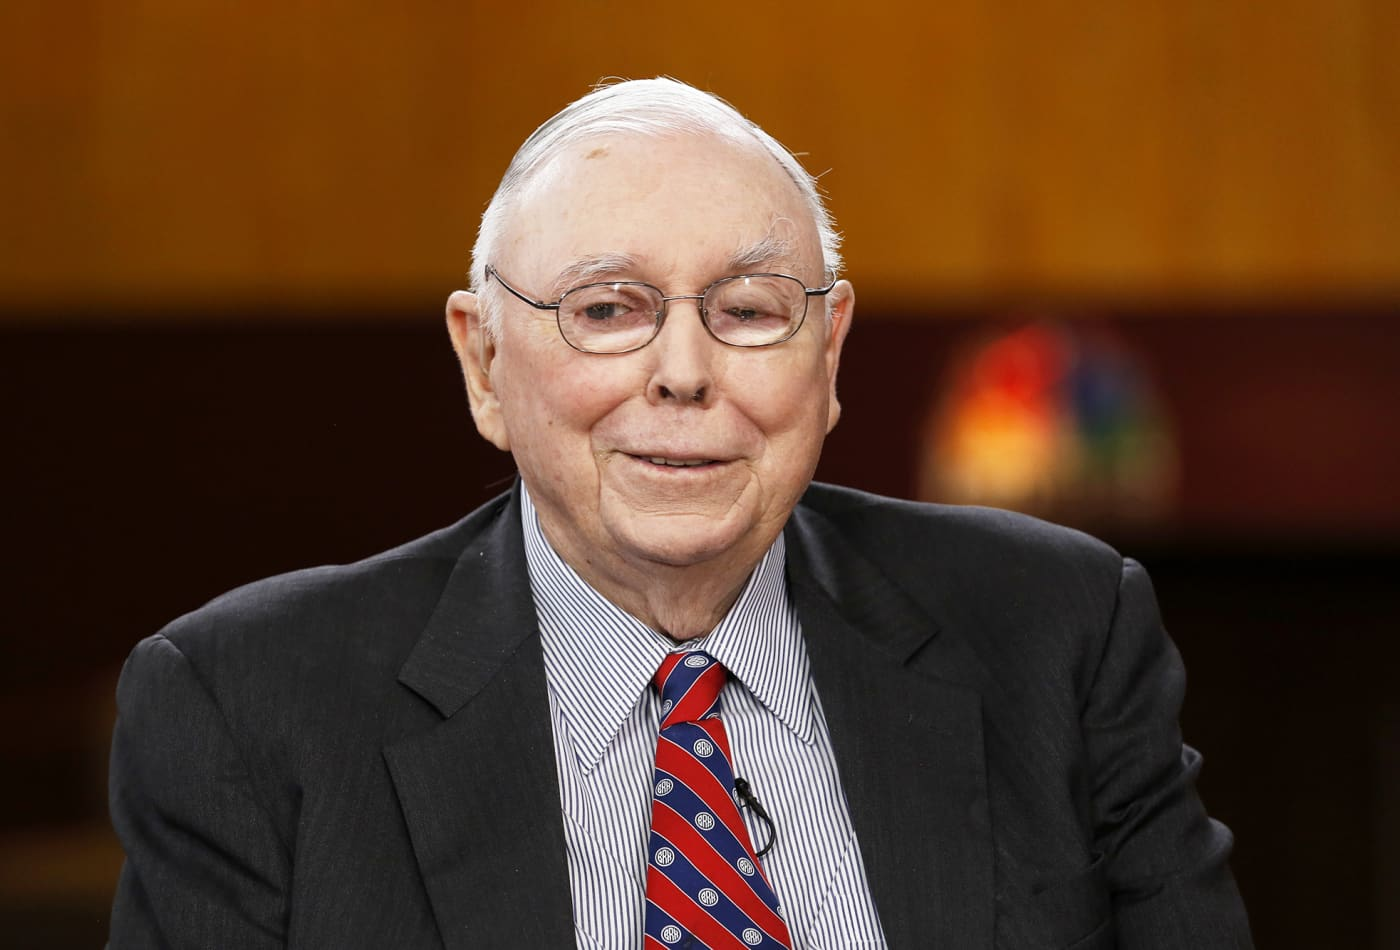 Billionaire Charlie Munger says living by this rule is key to his success